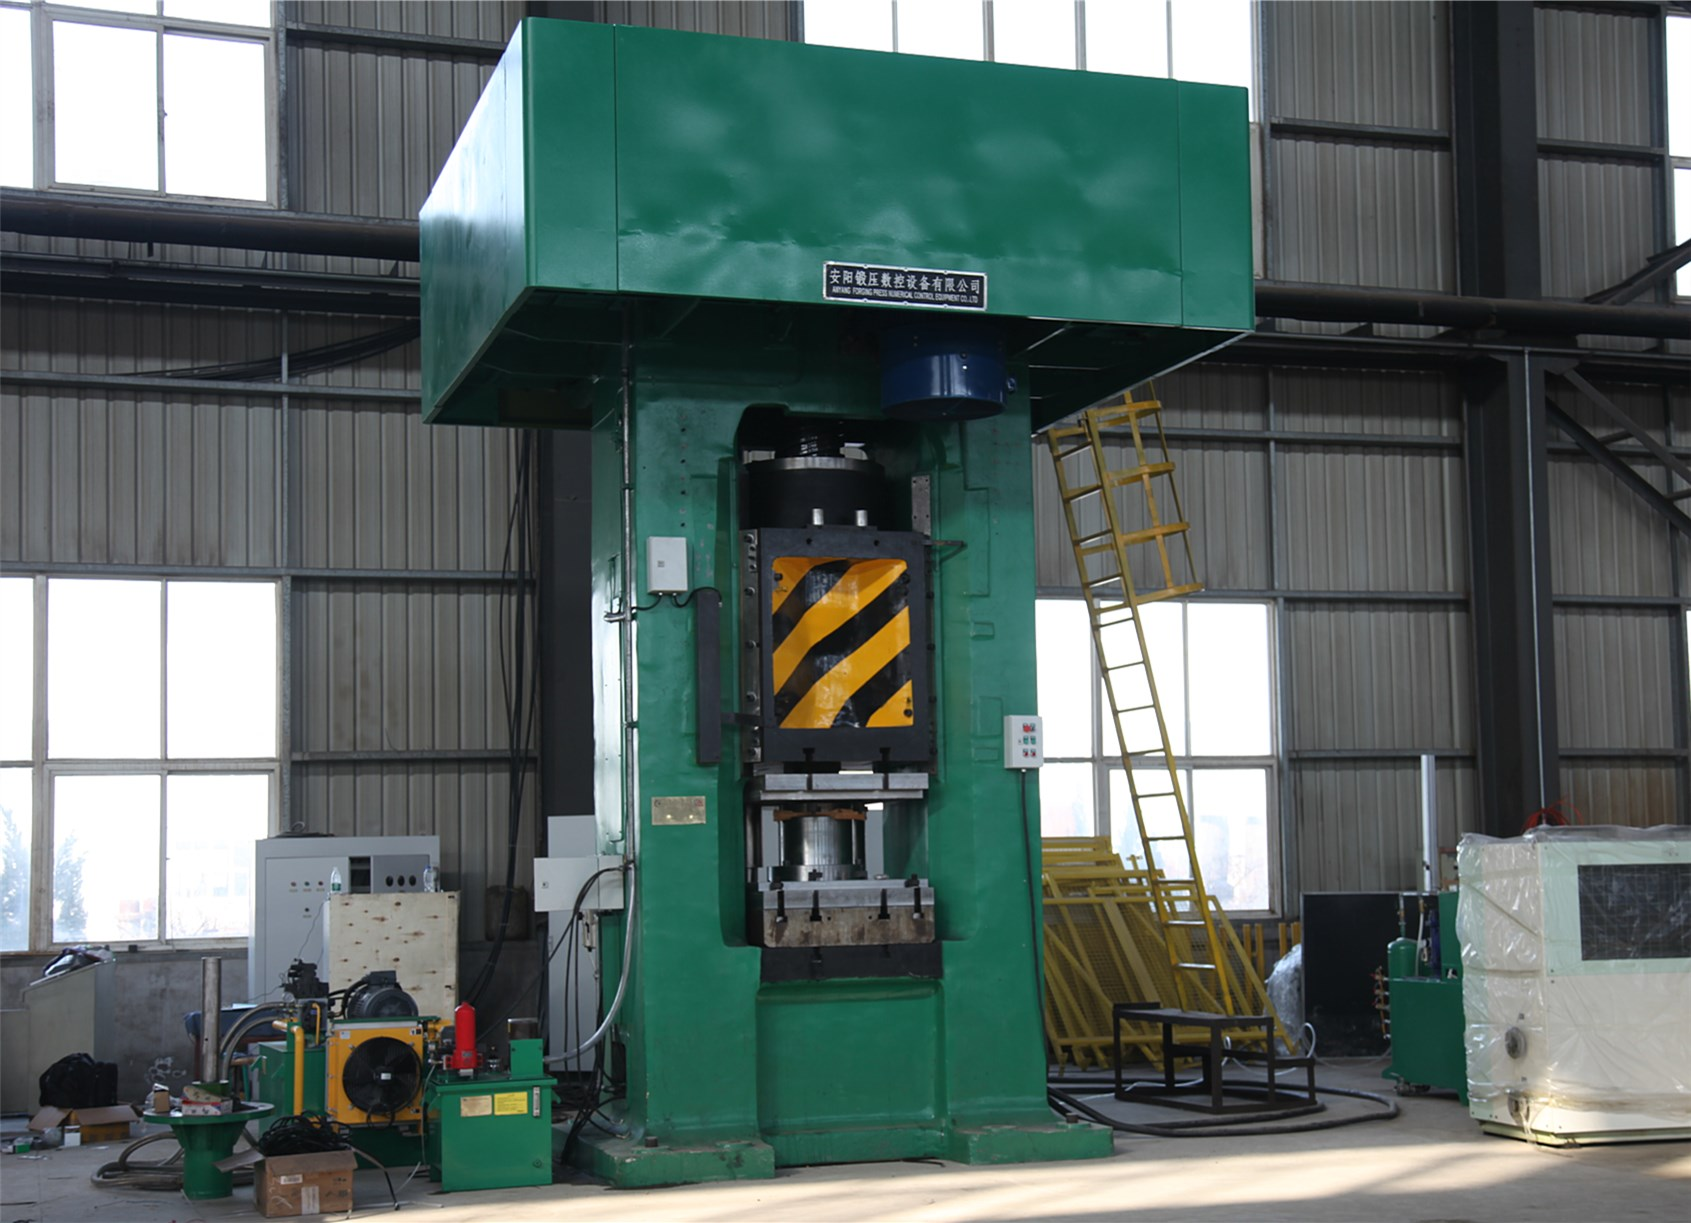 1600T screw press installing and testing